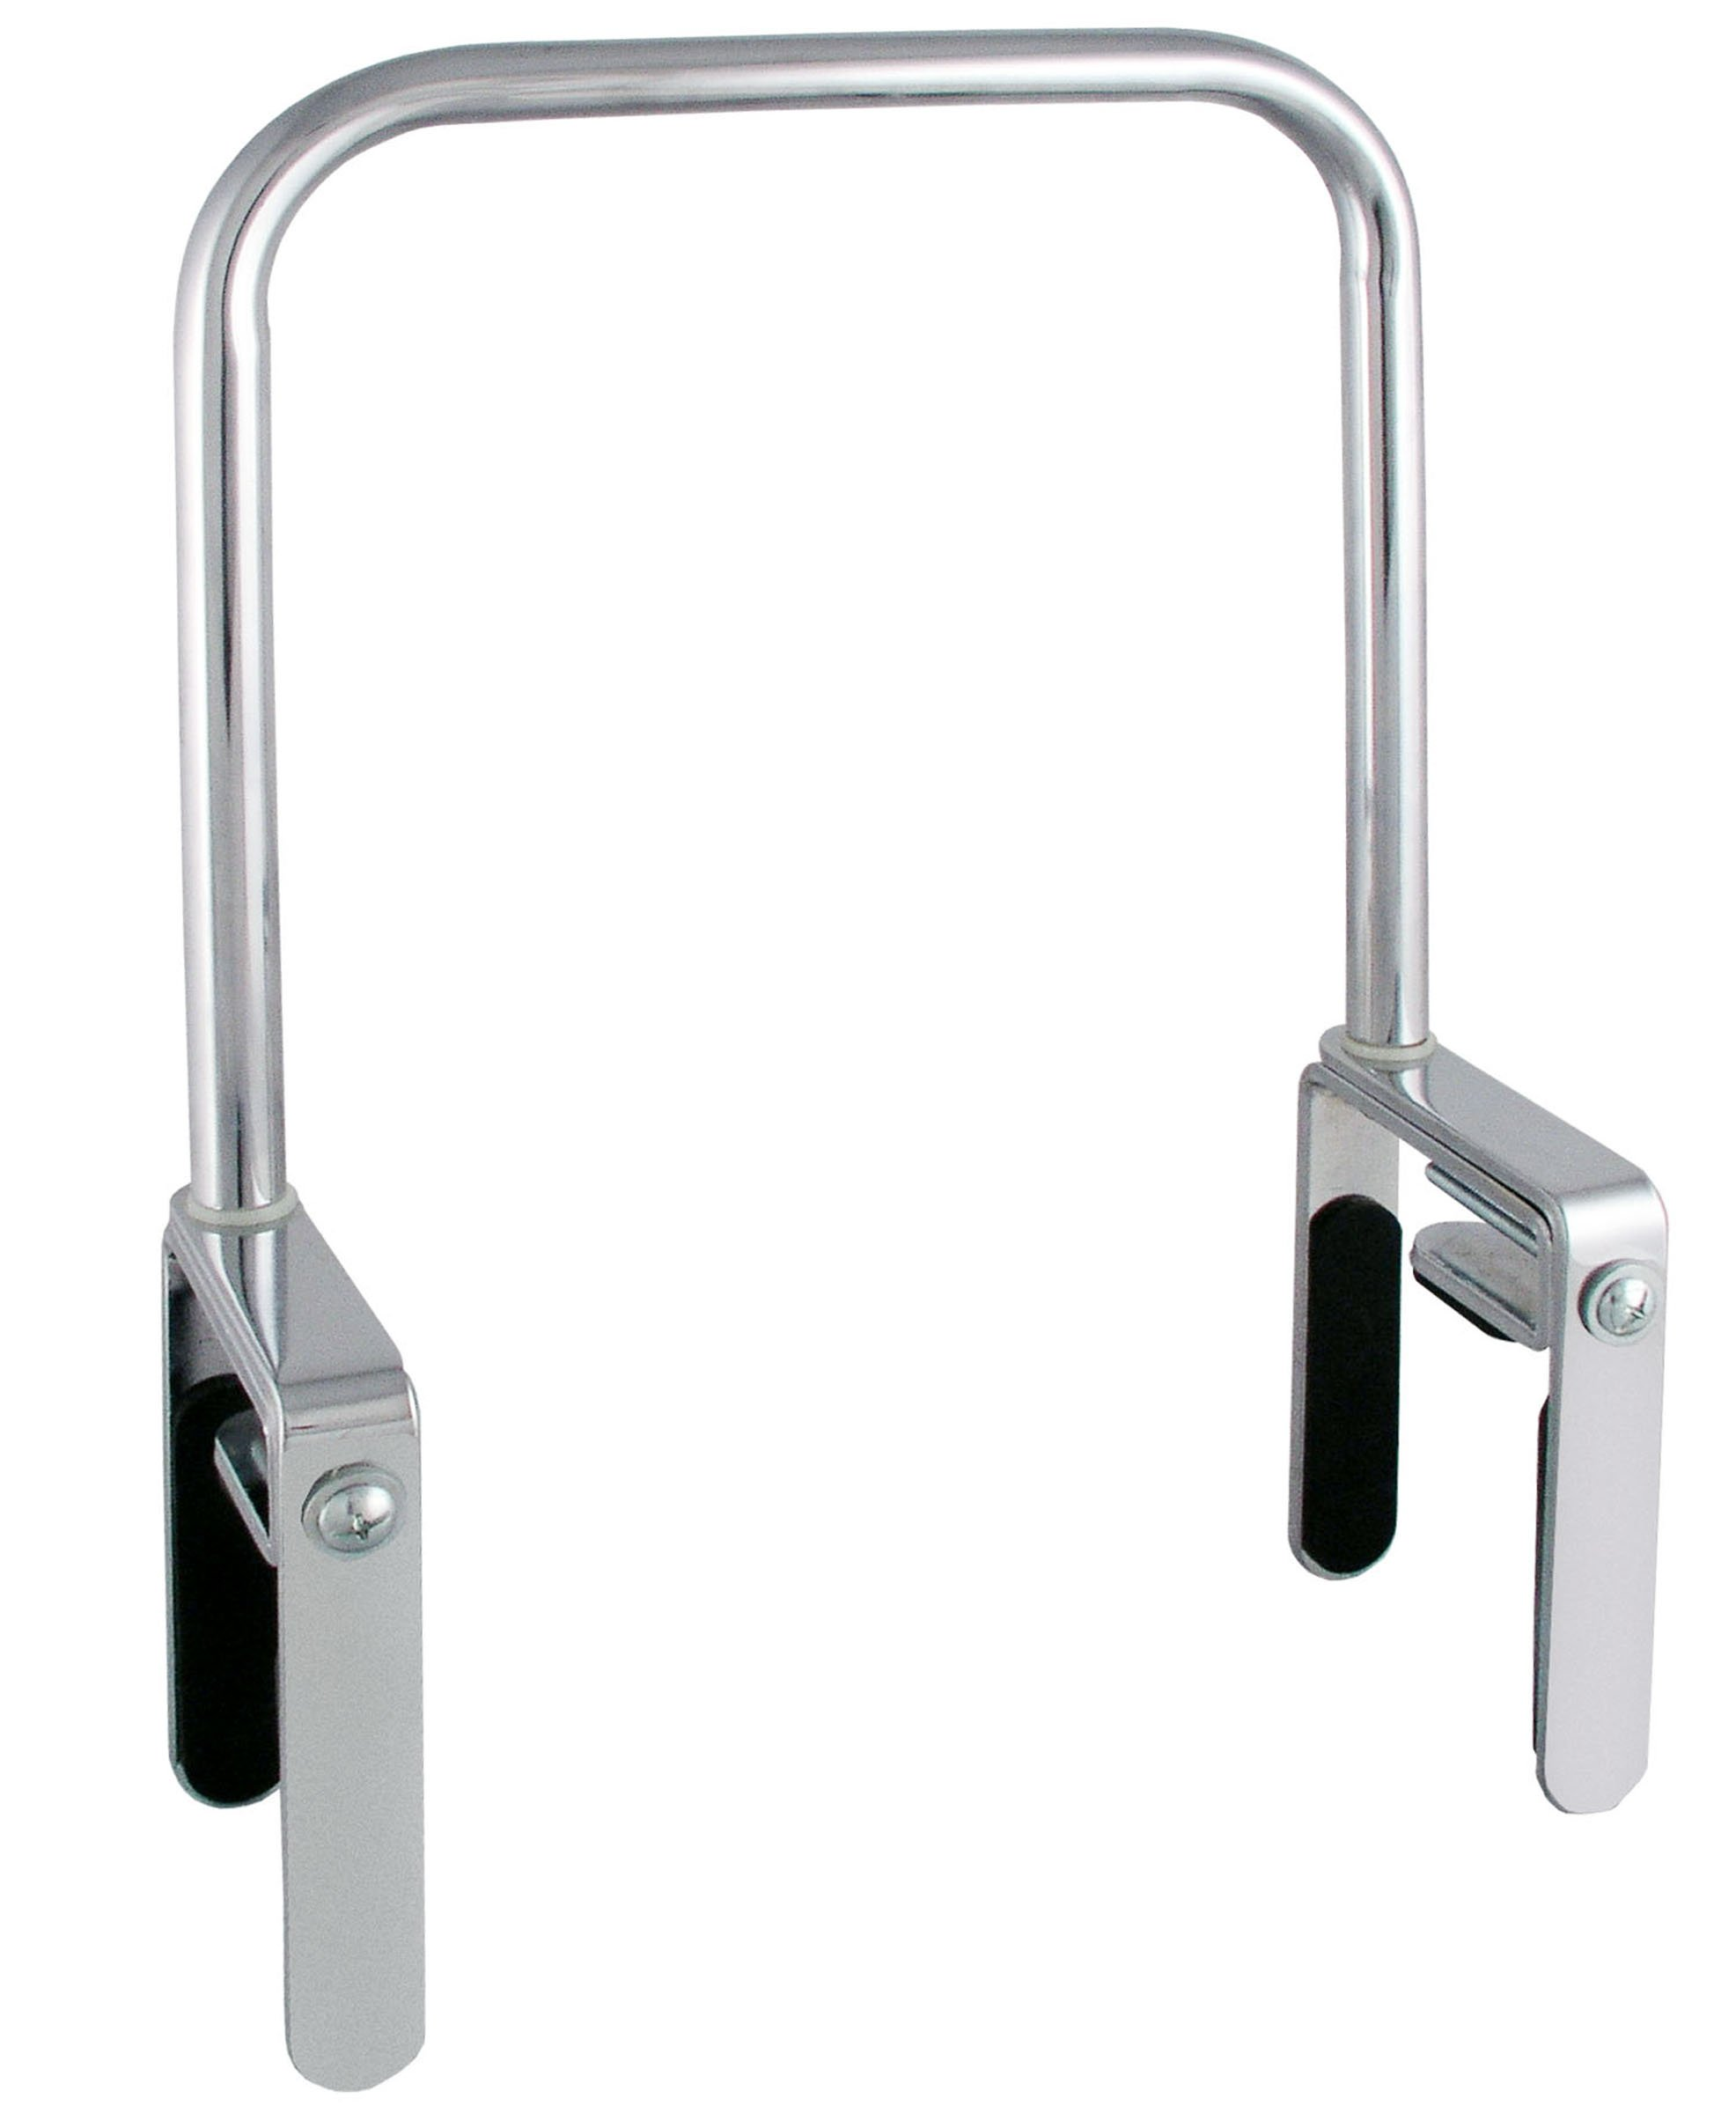 LDR 068 2008 11-Inch Bathtub Safety Bar, Chrome